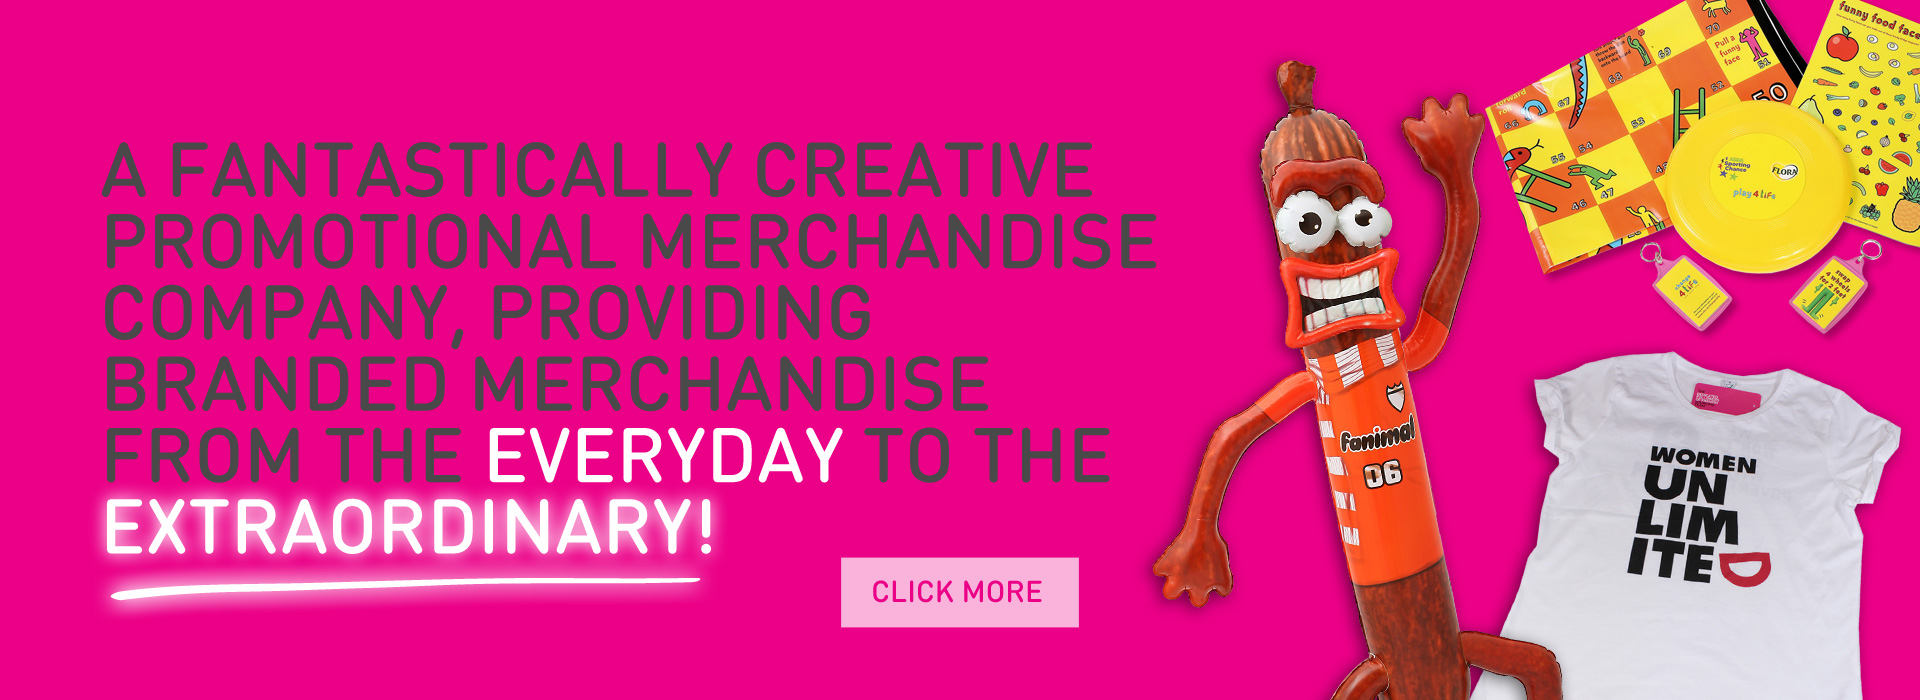 Promotional Merchandise Company The Sourcing Team